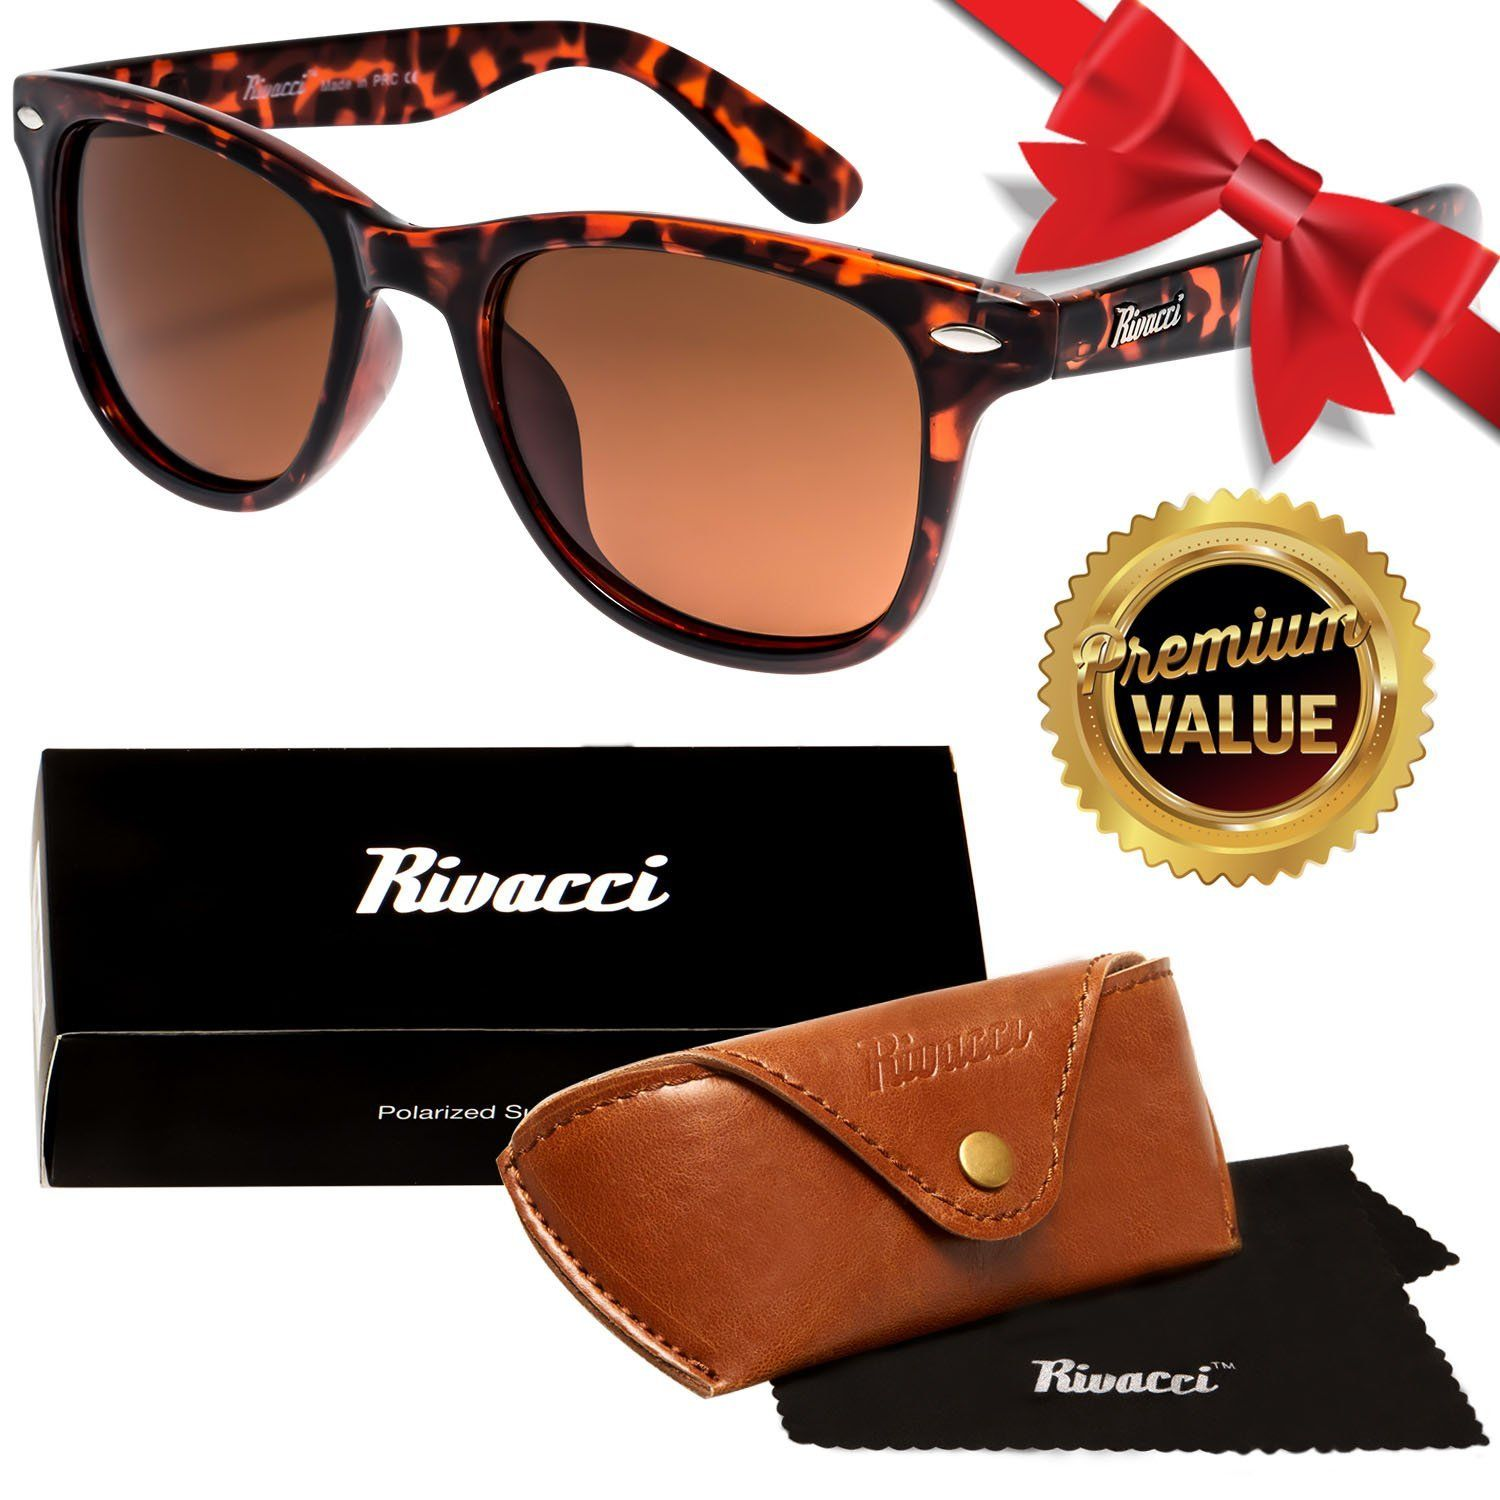 2f8e5b13ff Amazon.com  Rivacci Unisex s Wayfarer Tortoise Frame   Brown Lens Medium  49mm Designer Polarized Sunglasses  Sports   Outdoors